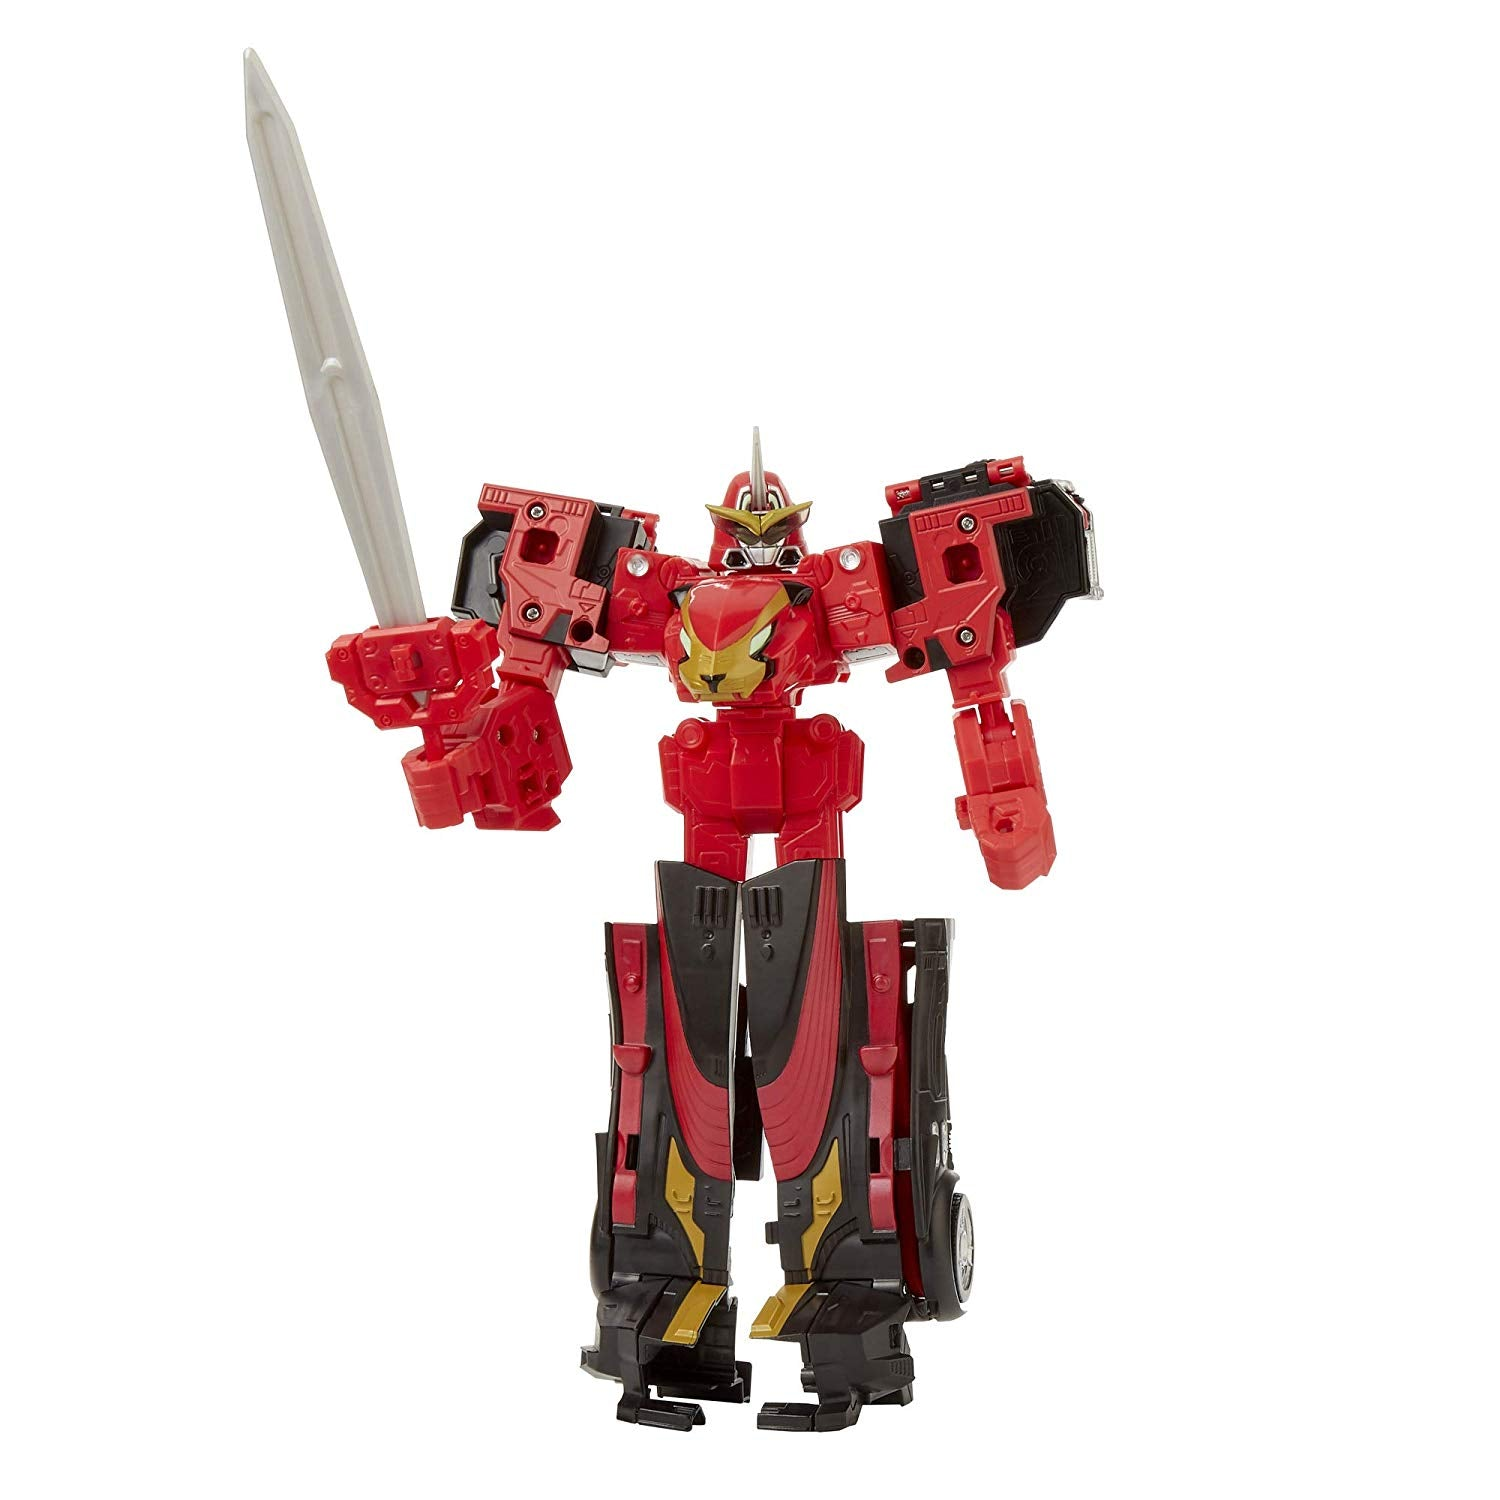 Power Ranger Ace Zord Vehicle by Hasbro -Hasbro - India - www.superherotoystore.com